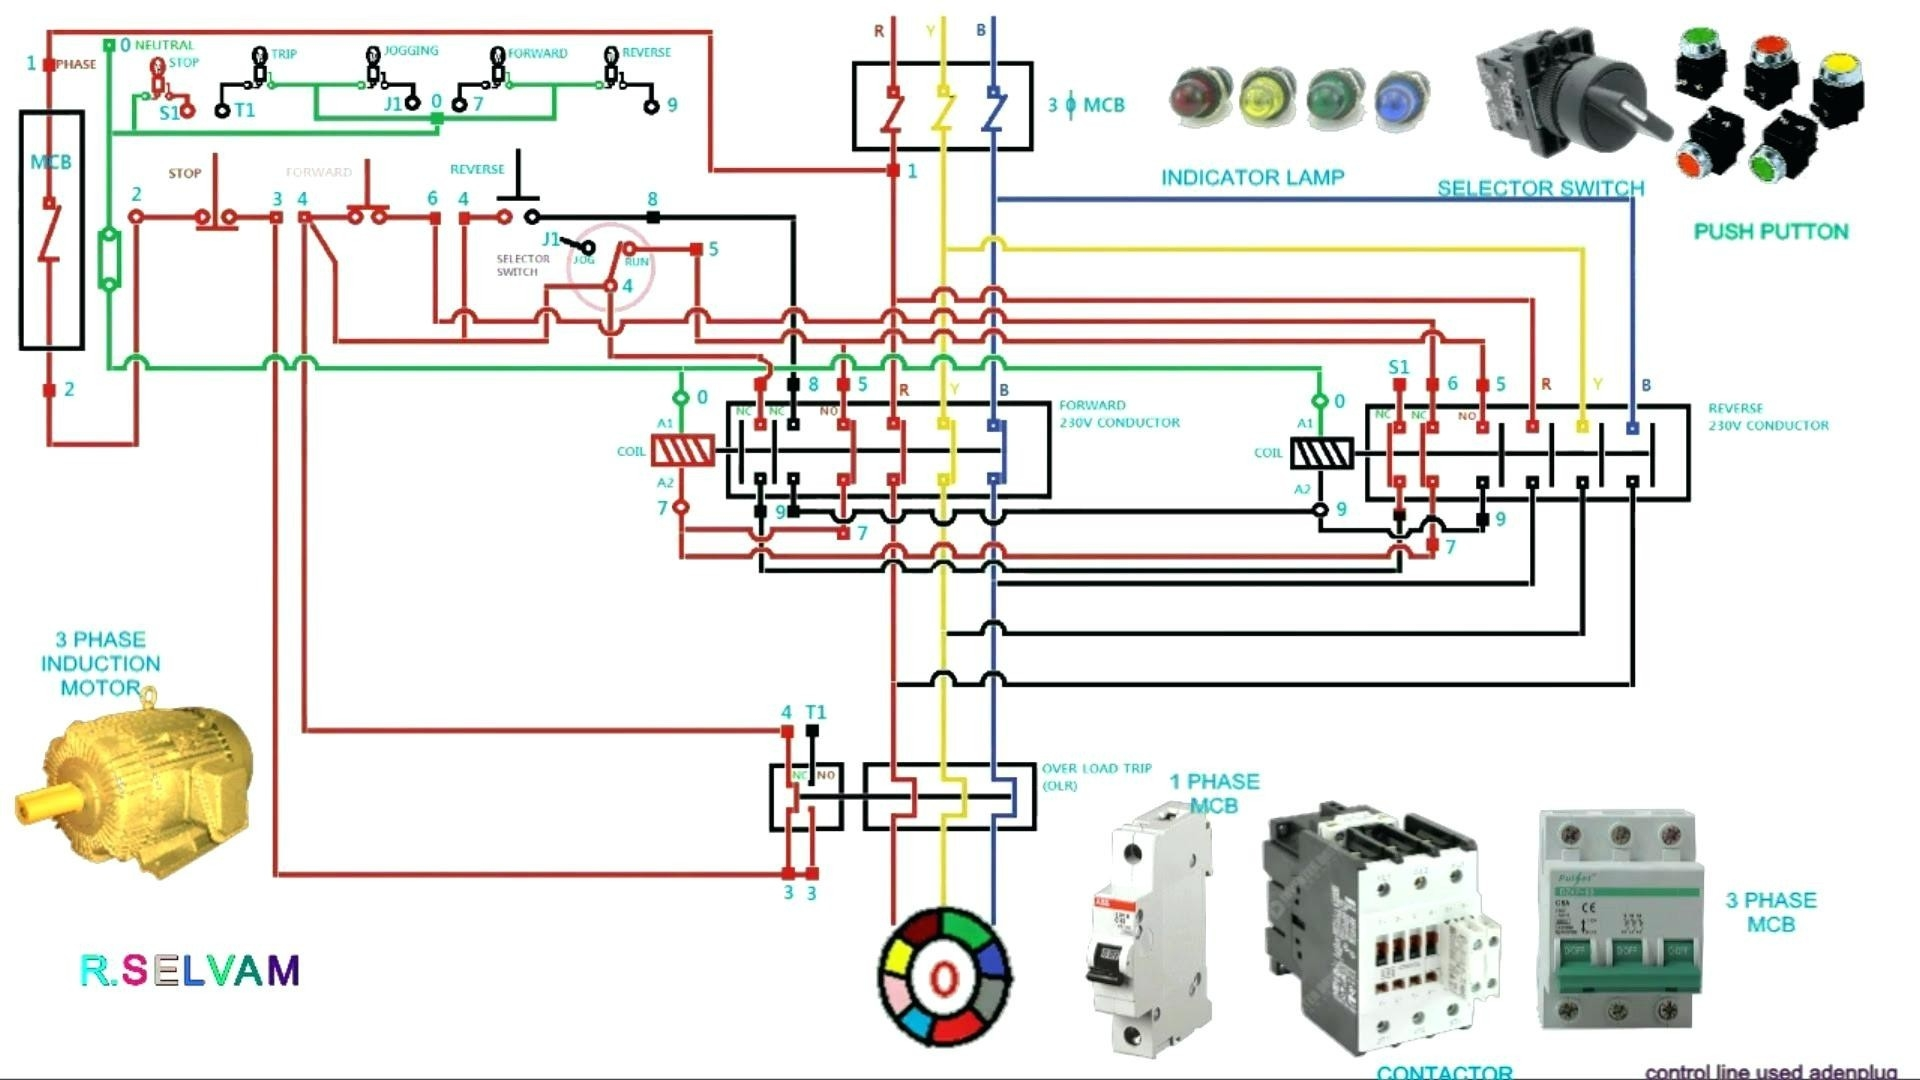 3 phase motor starter wiring diagram Download-Wiring Diagram for Electrical Contactor New Circuit Diagram Contactor Best 3 Phase Motor Starter Wiring 15-r